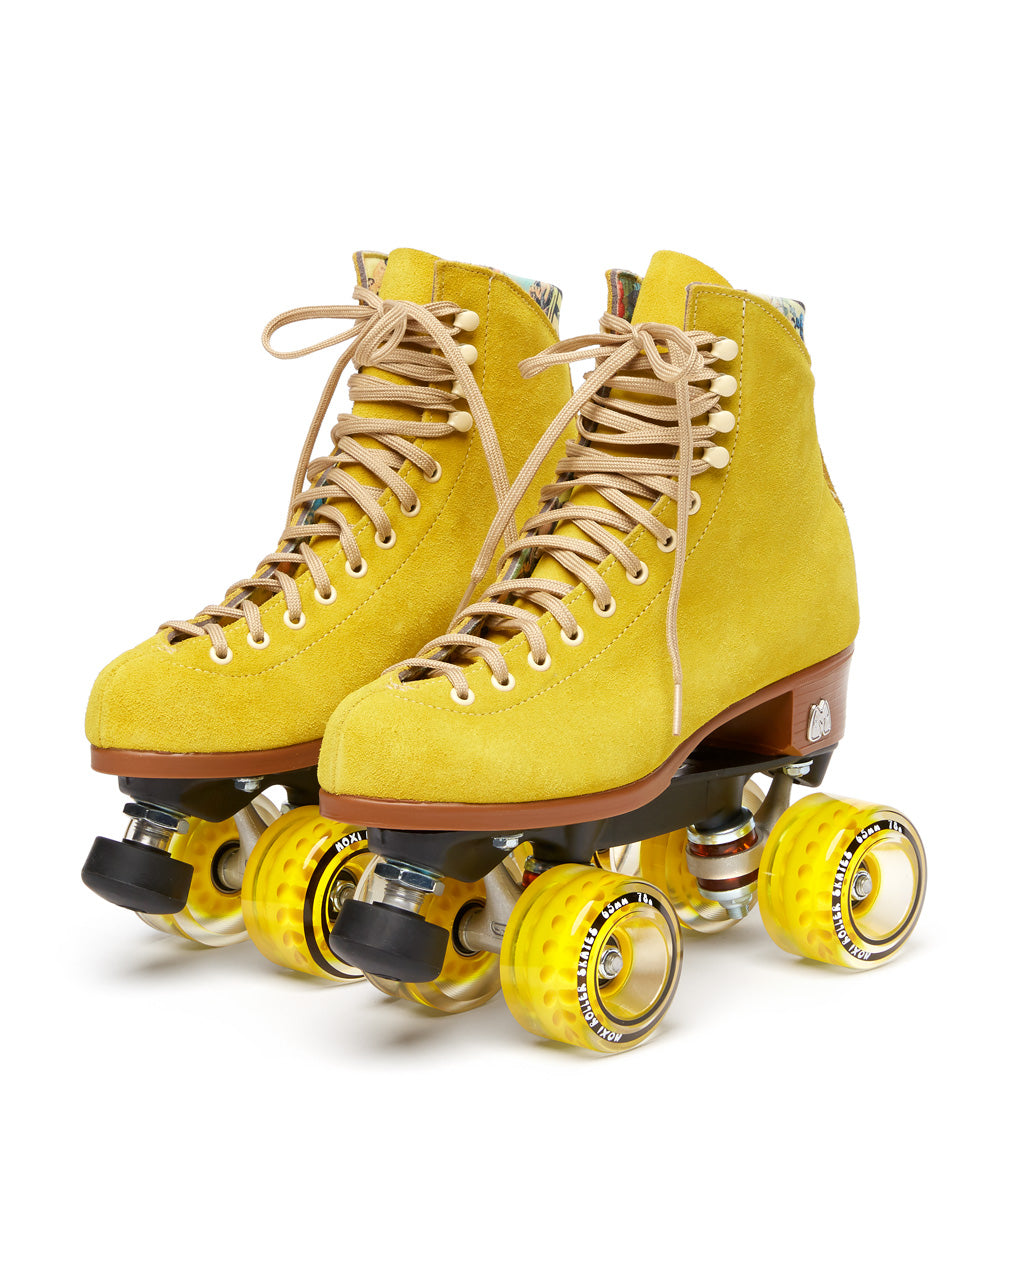 These Lolly Roller Skates by Moxi Roller Skates come in pineapple yellow.